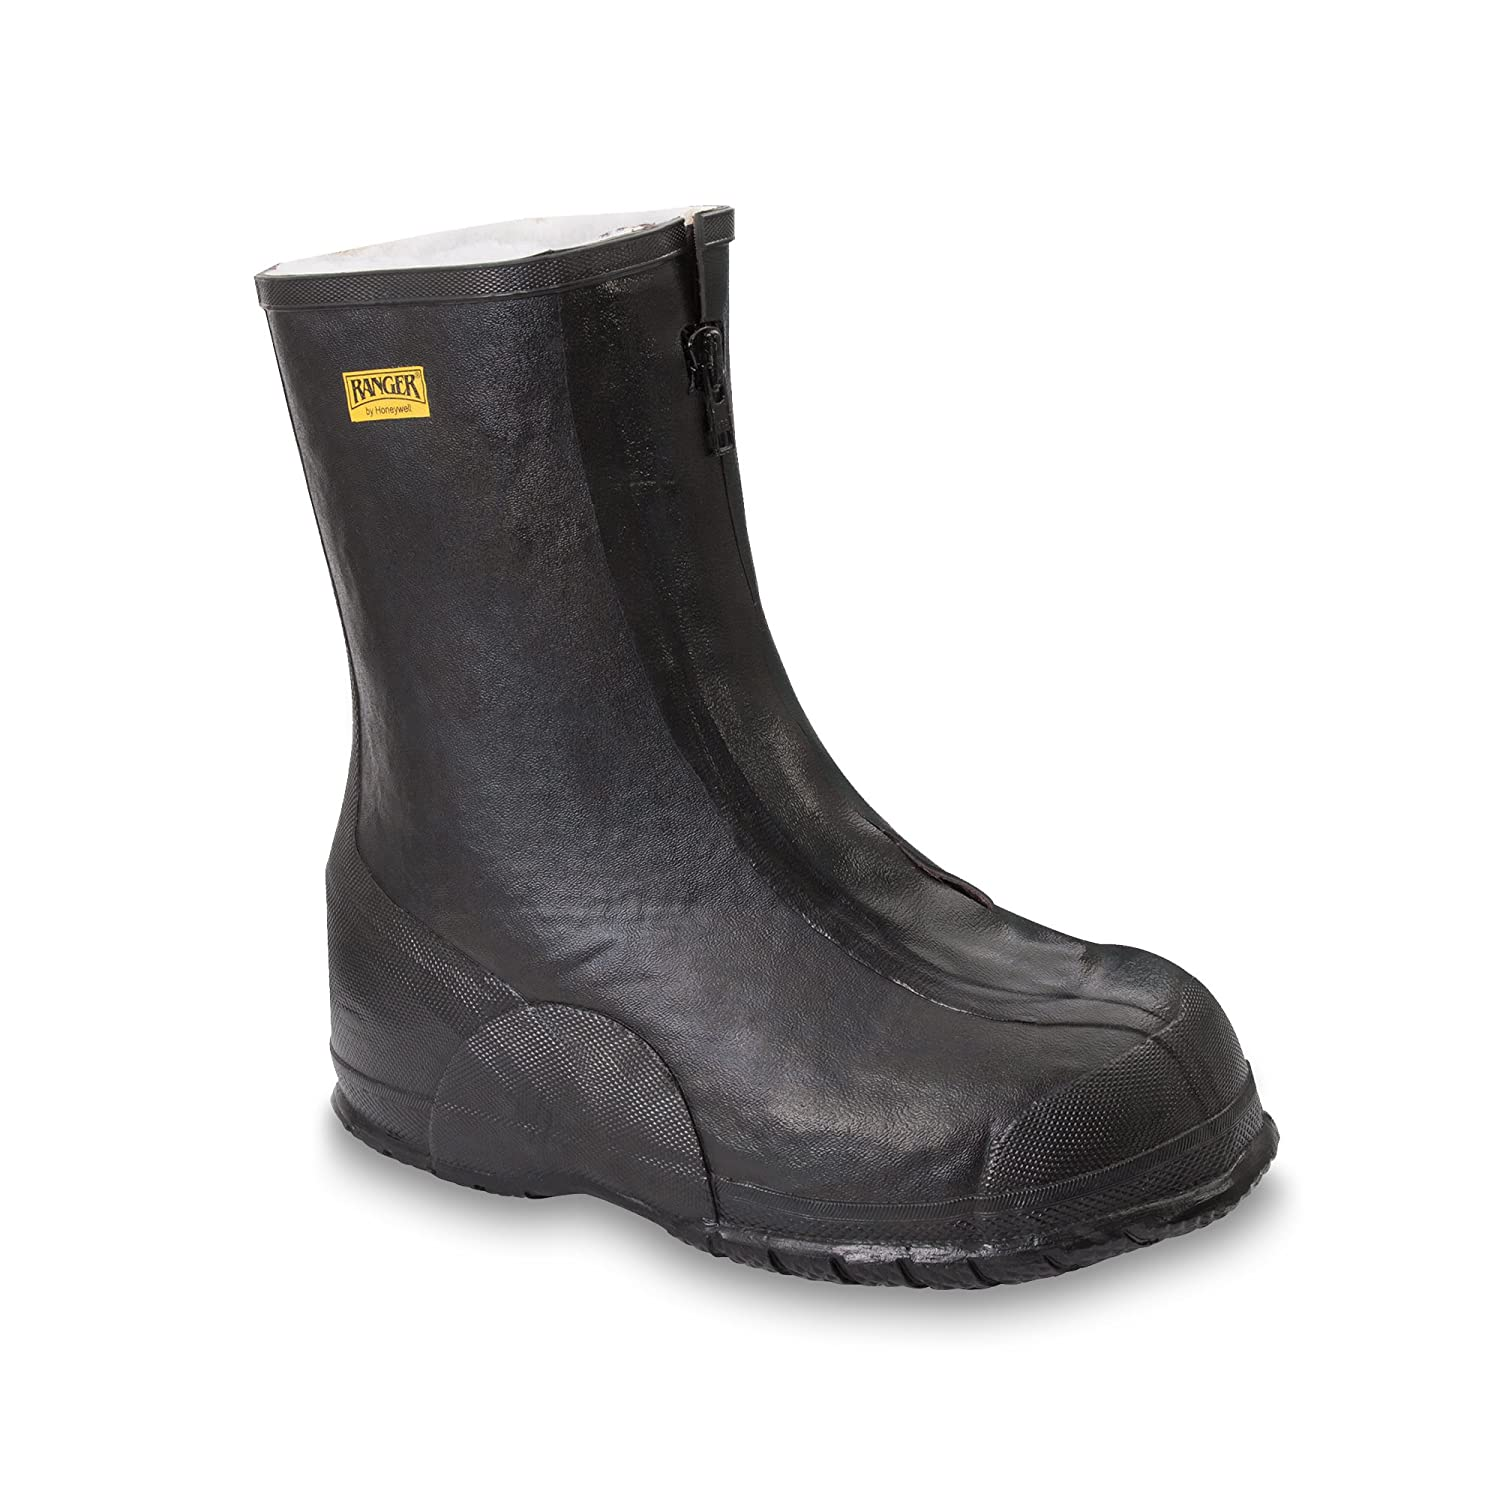 Ranger 12 Rubber Oversized Insulated Men's Dress Overboots, Black (T315) Sperian Protection Group T315-BLM-130